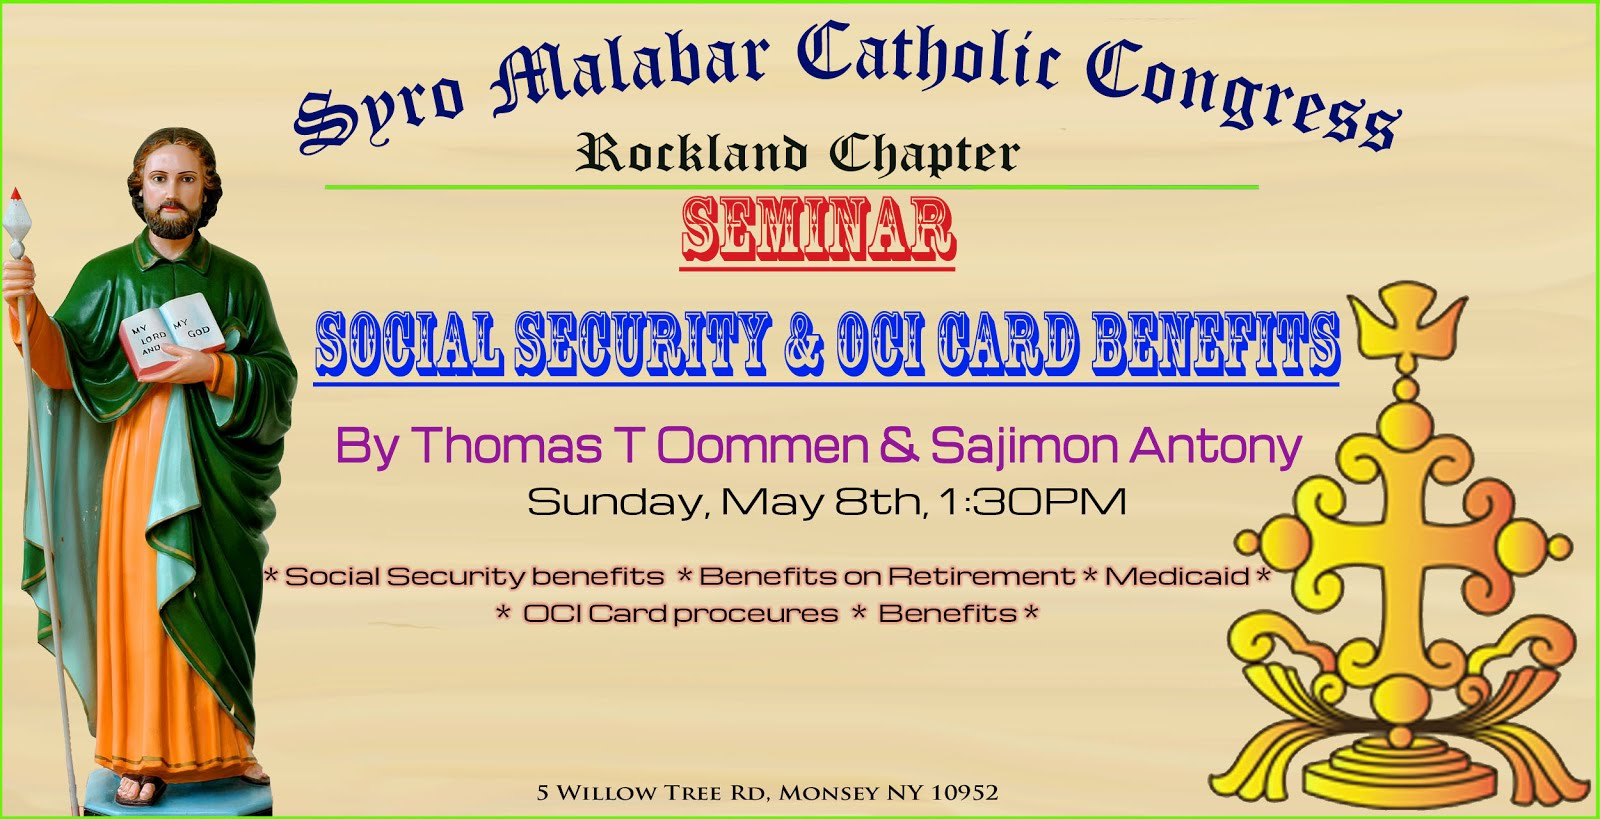 St Mary S R C Church Rockland Reminder Social Security And Oci Card Benefits Seminar